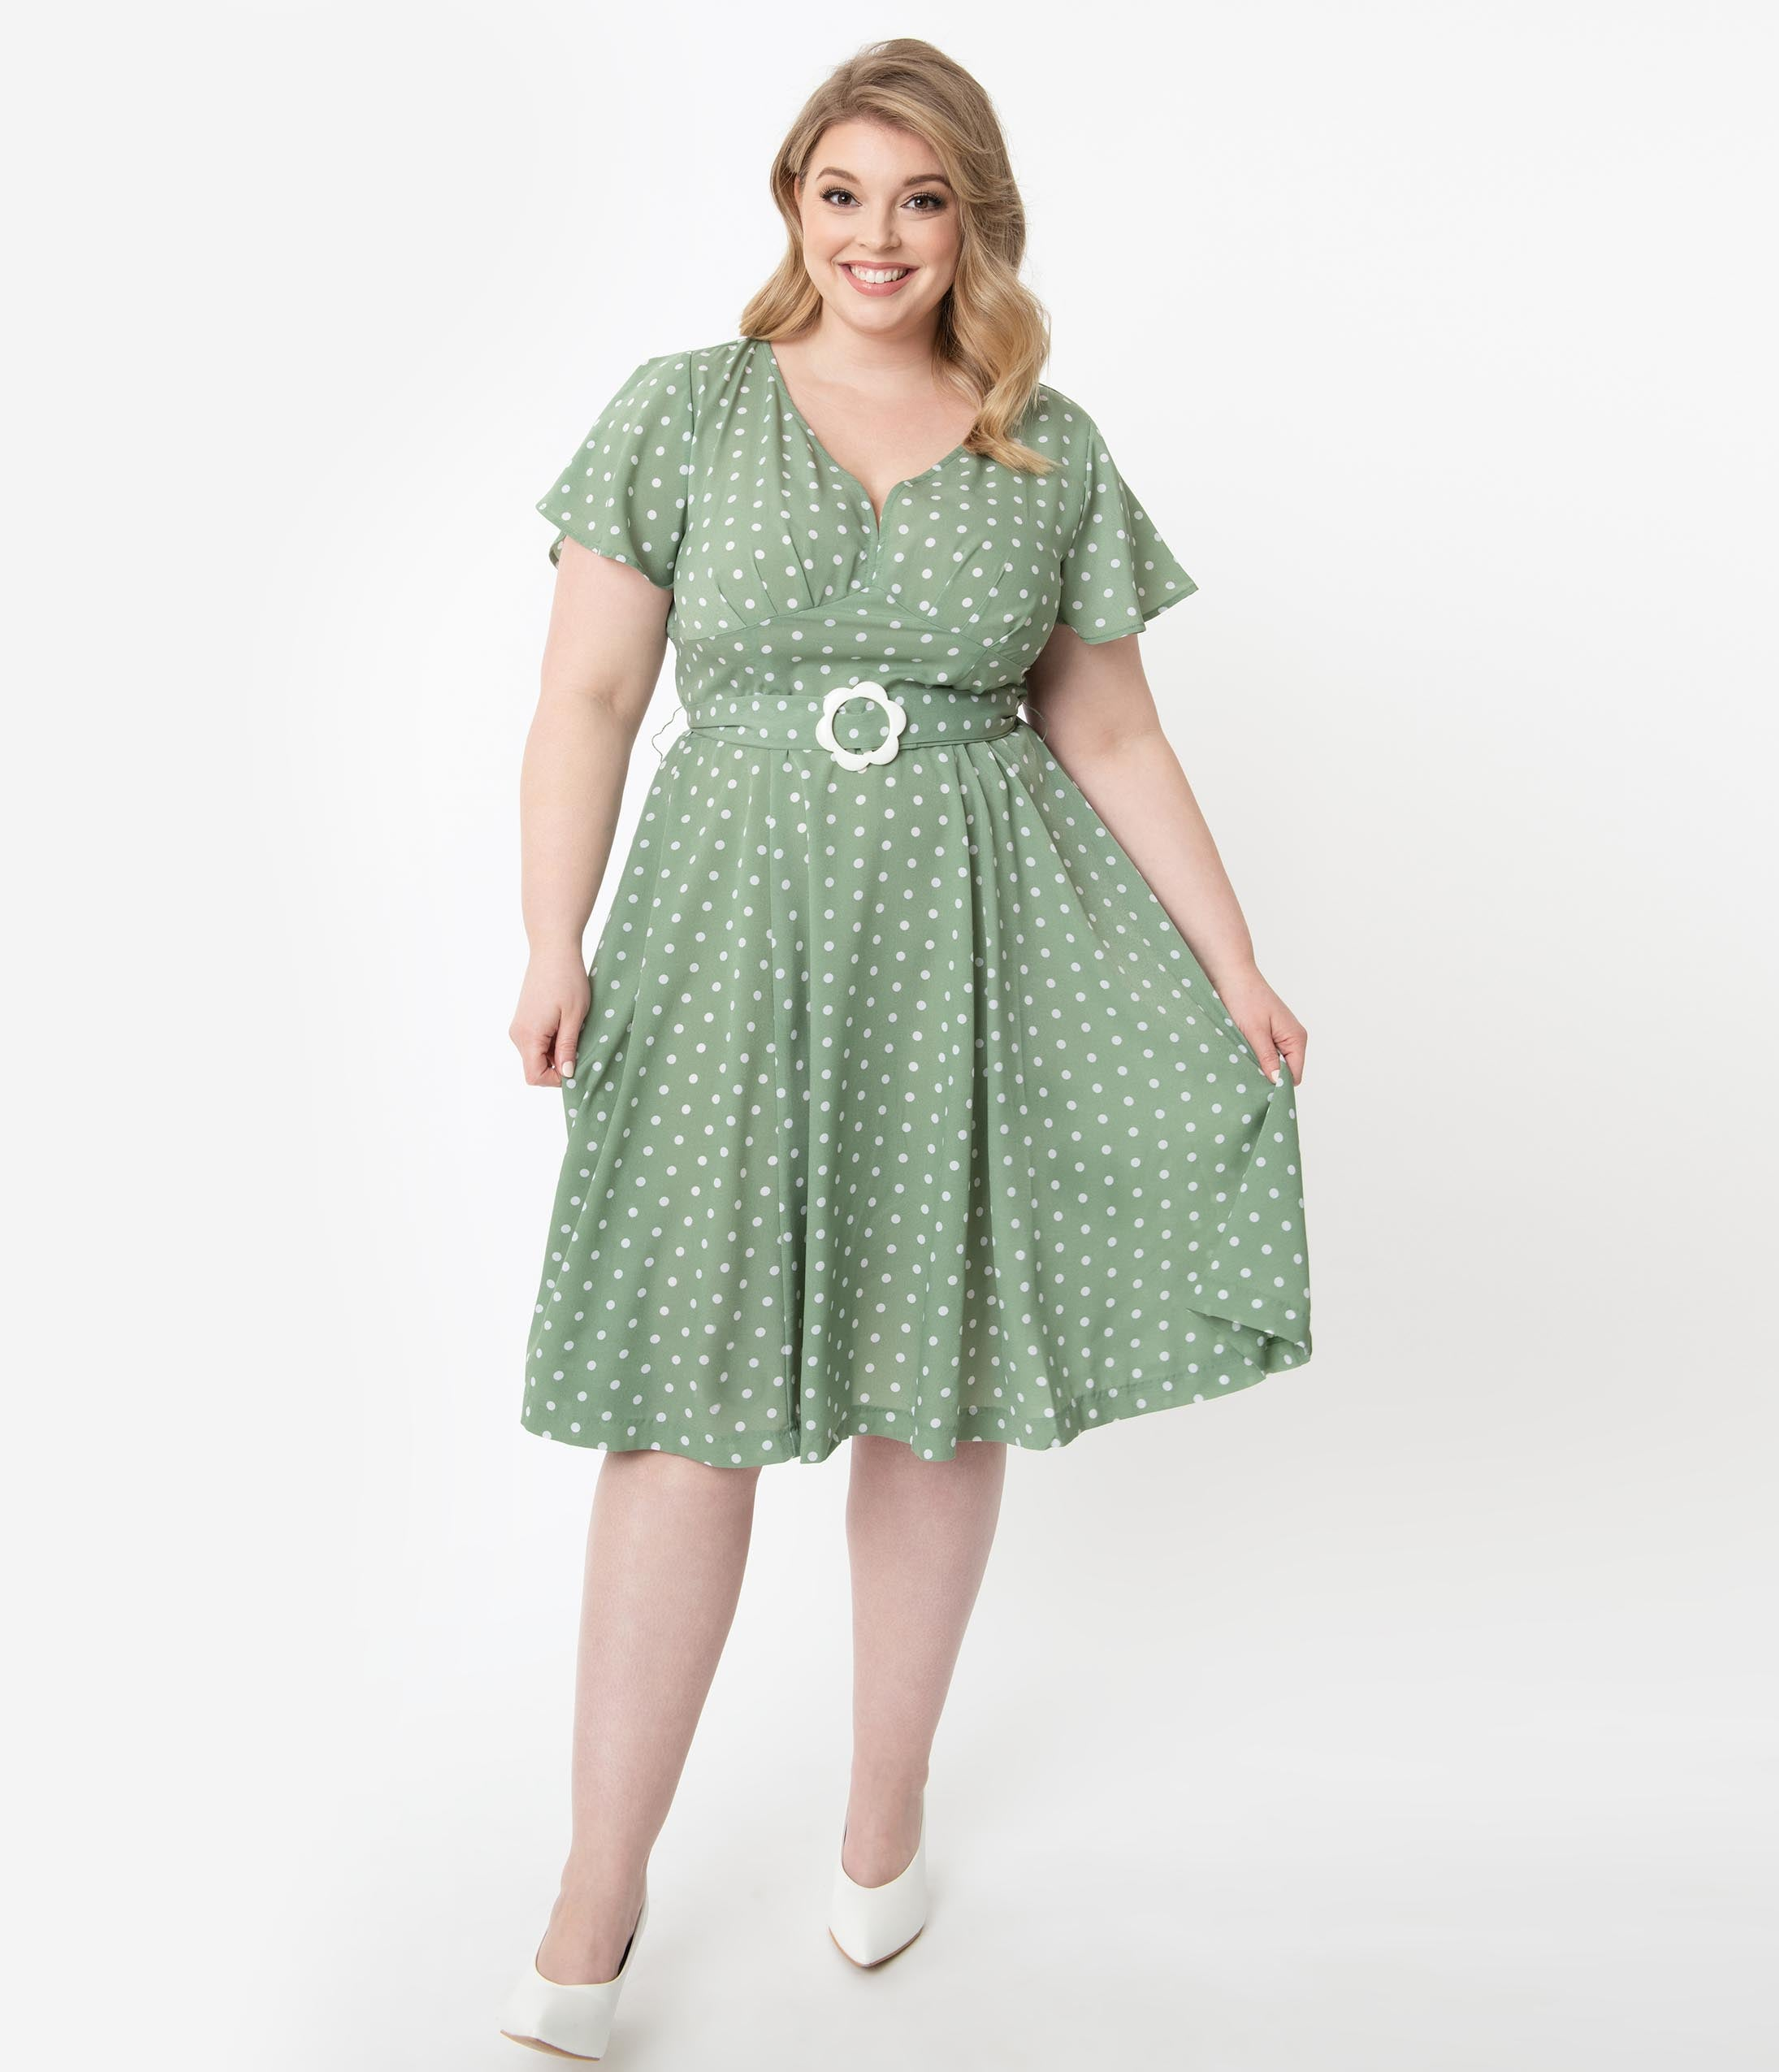 Swing Dance Clothing You Can Dance In Unique Vintage Plus Size 1940S Sage Green  Ivory Polka Dot Kay Swing Dress $68.00 AT vintagedancer.com